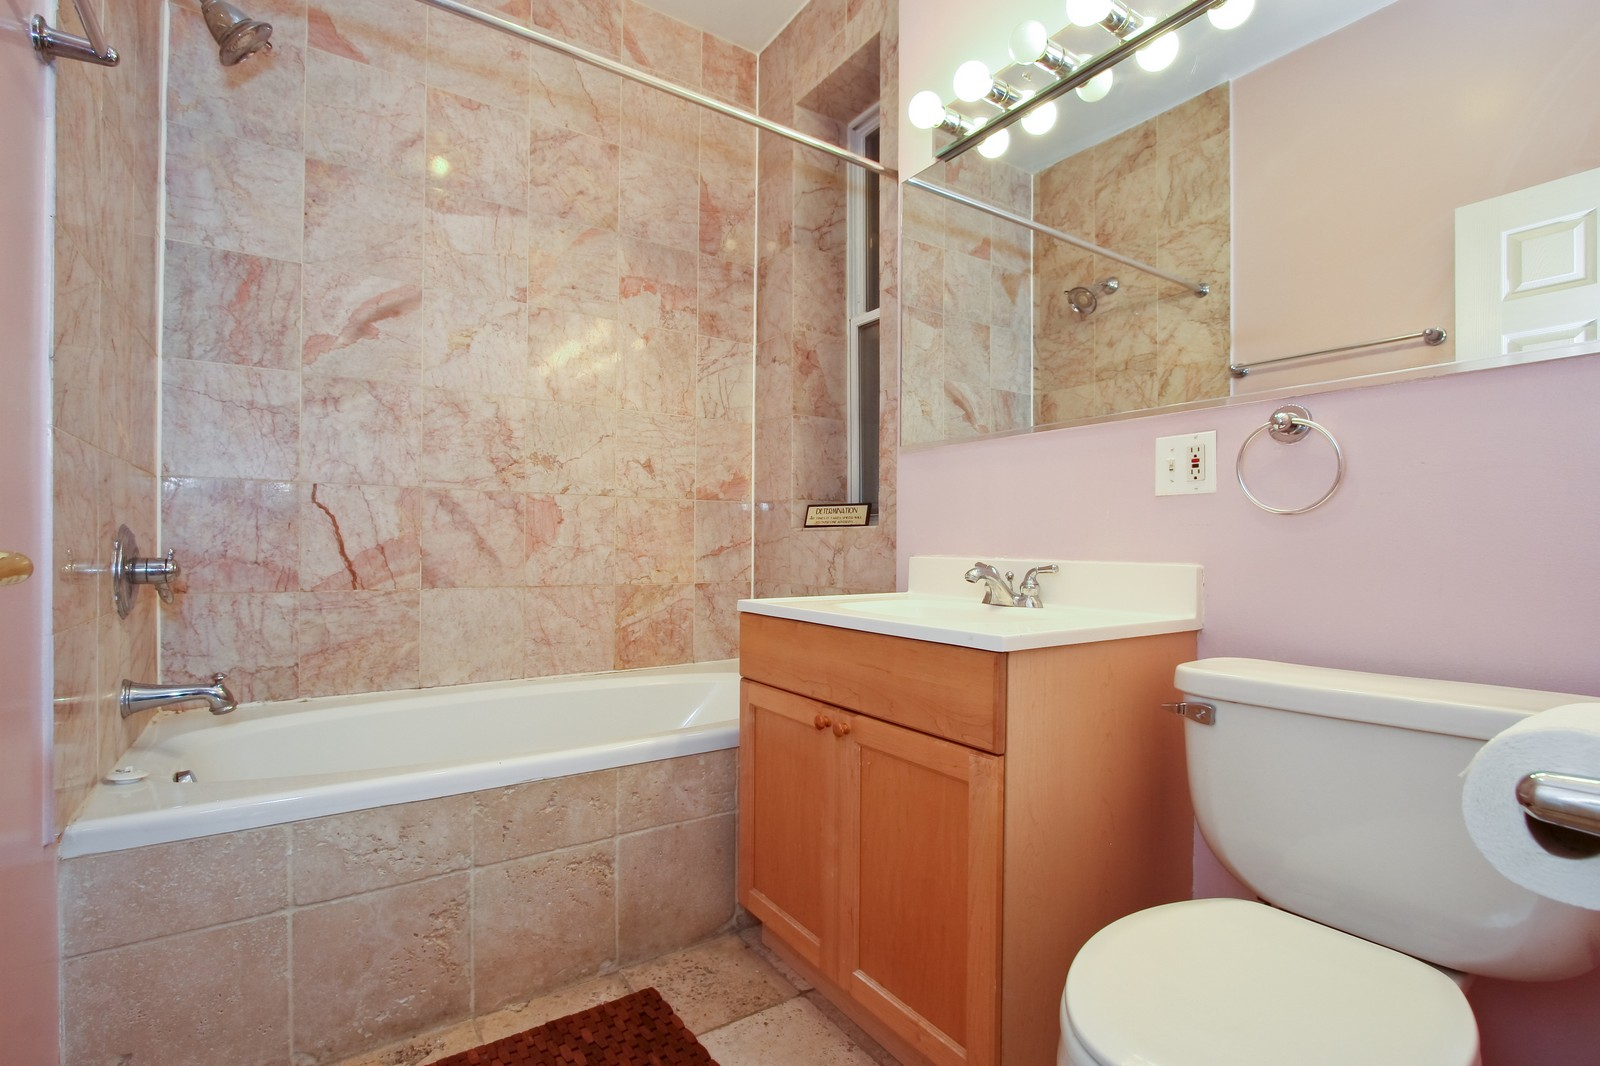 Real Estate Photography - 6415 S Minerva Ave, Unit 2NW, Chicago, IL, 60637 - Master Bathroom